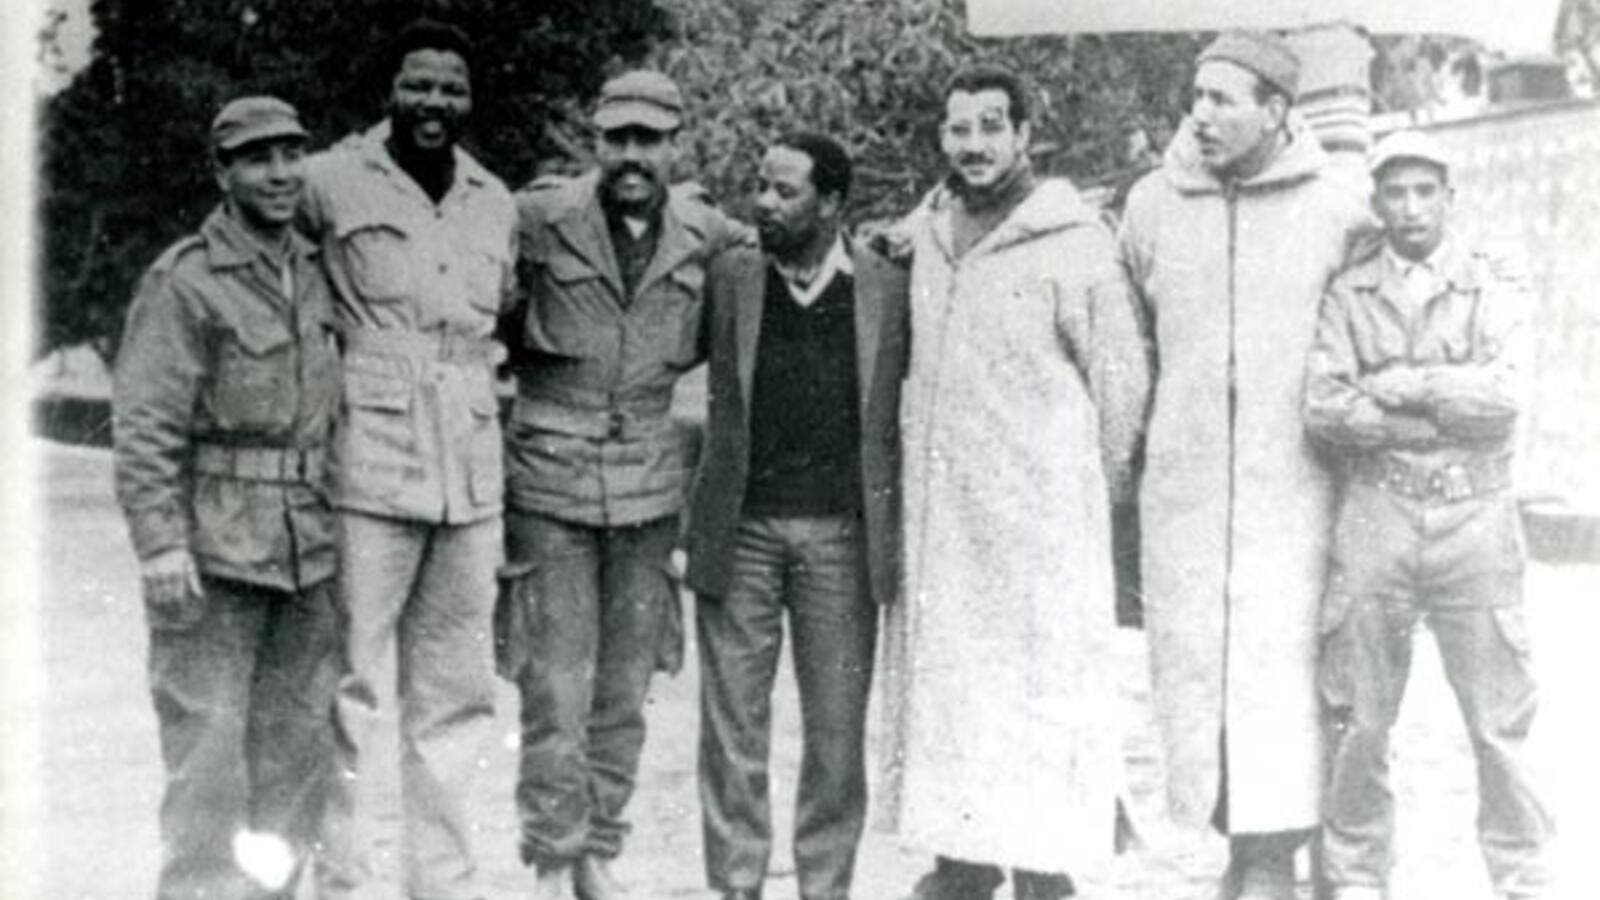 Mandela, pictured second from left, received his fist military training in Algeria with rebels from the National Liberation Front (Courtesy of Pretoria News Library)